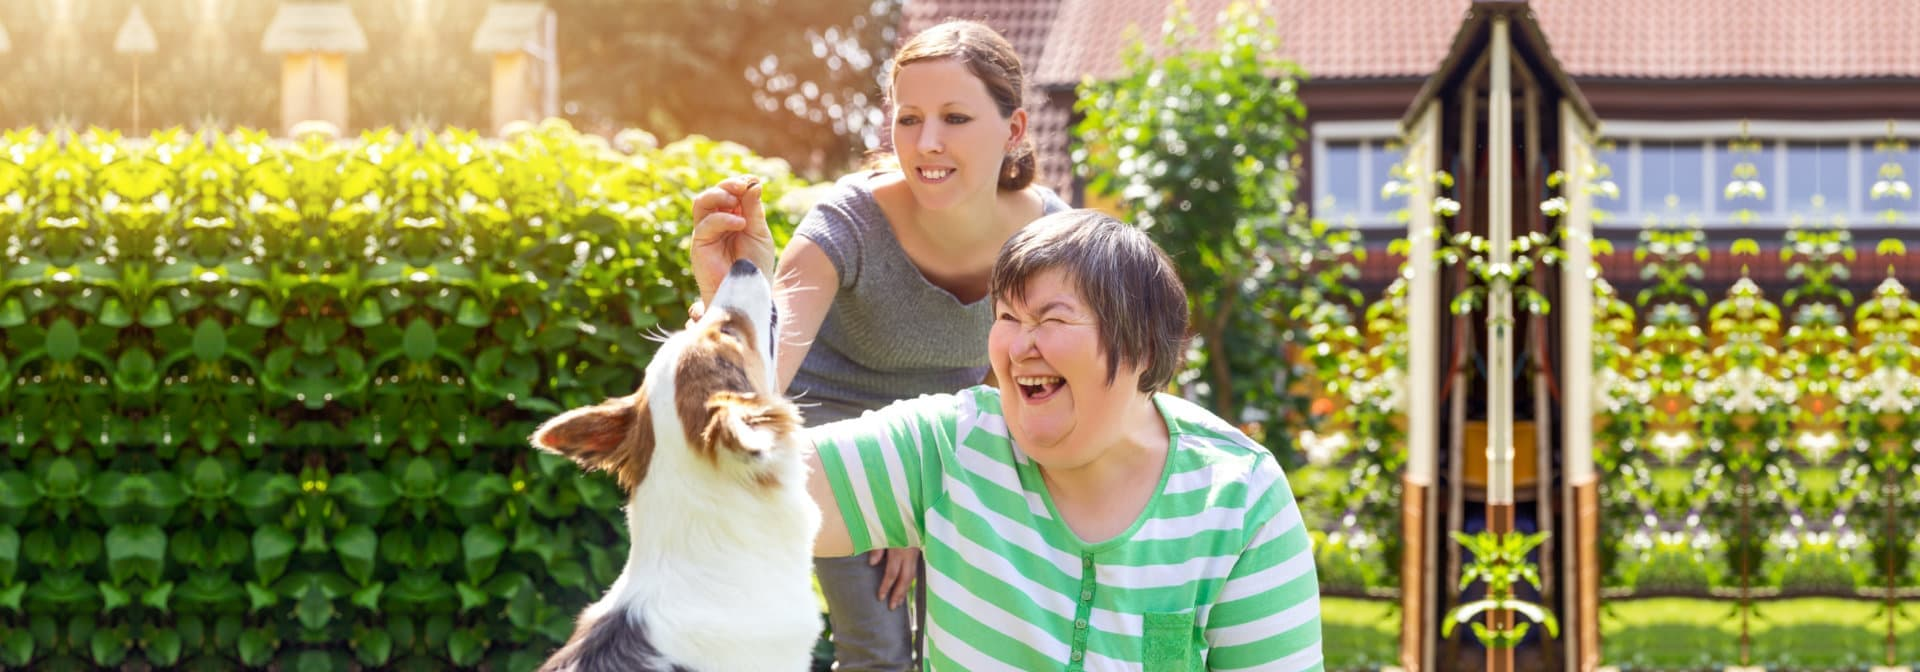 happy women with dog